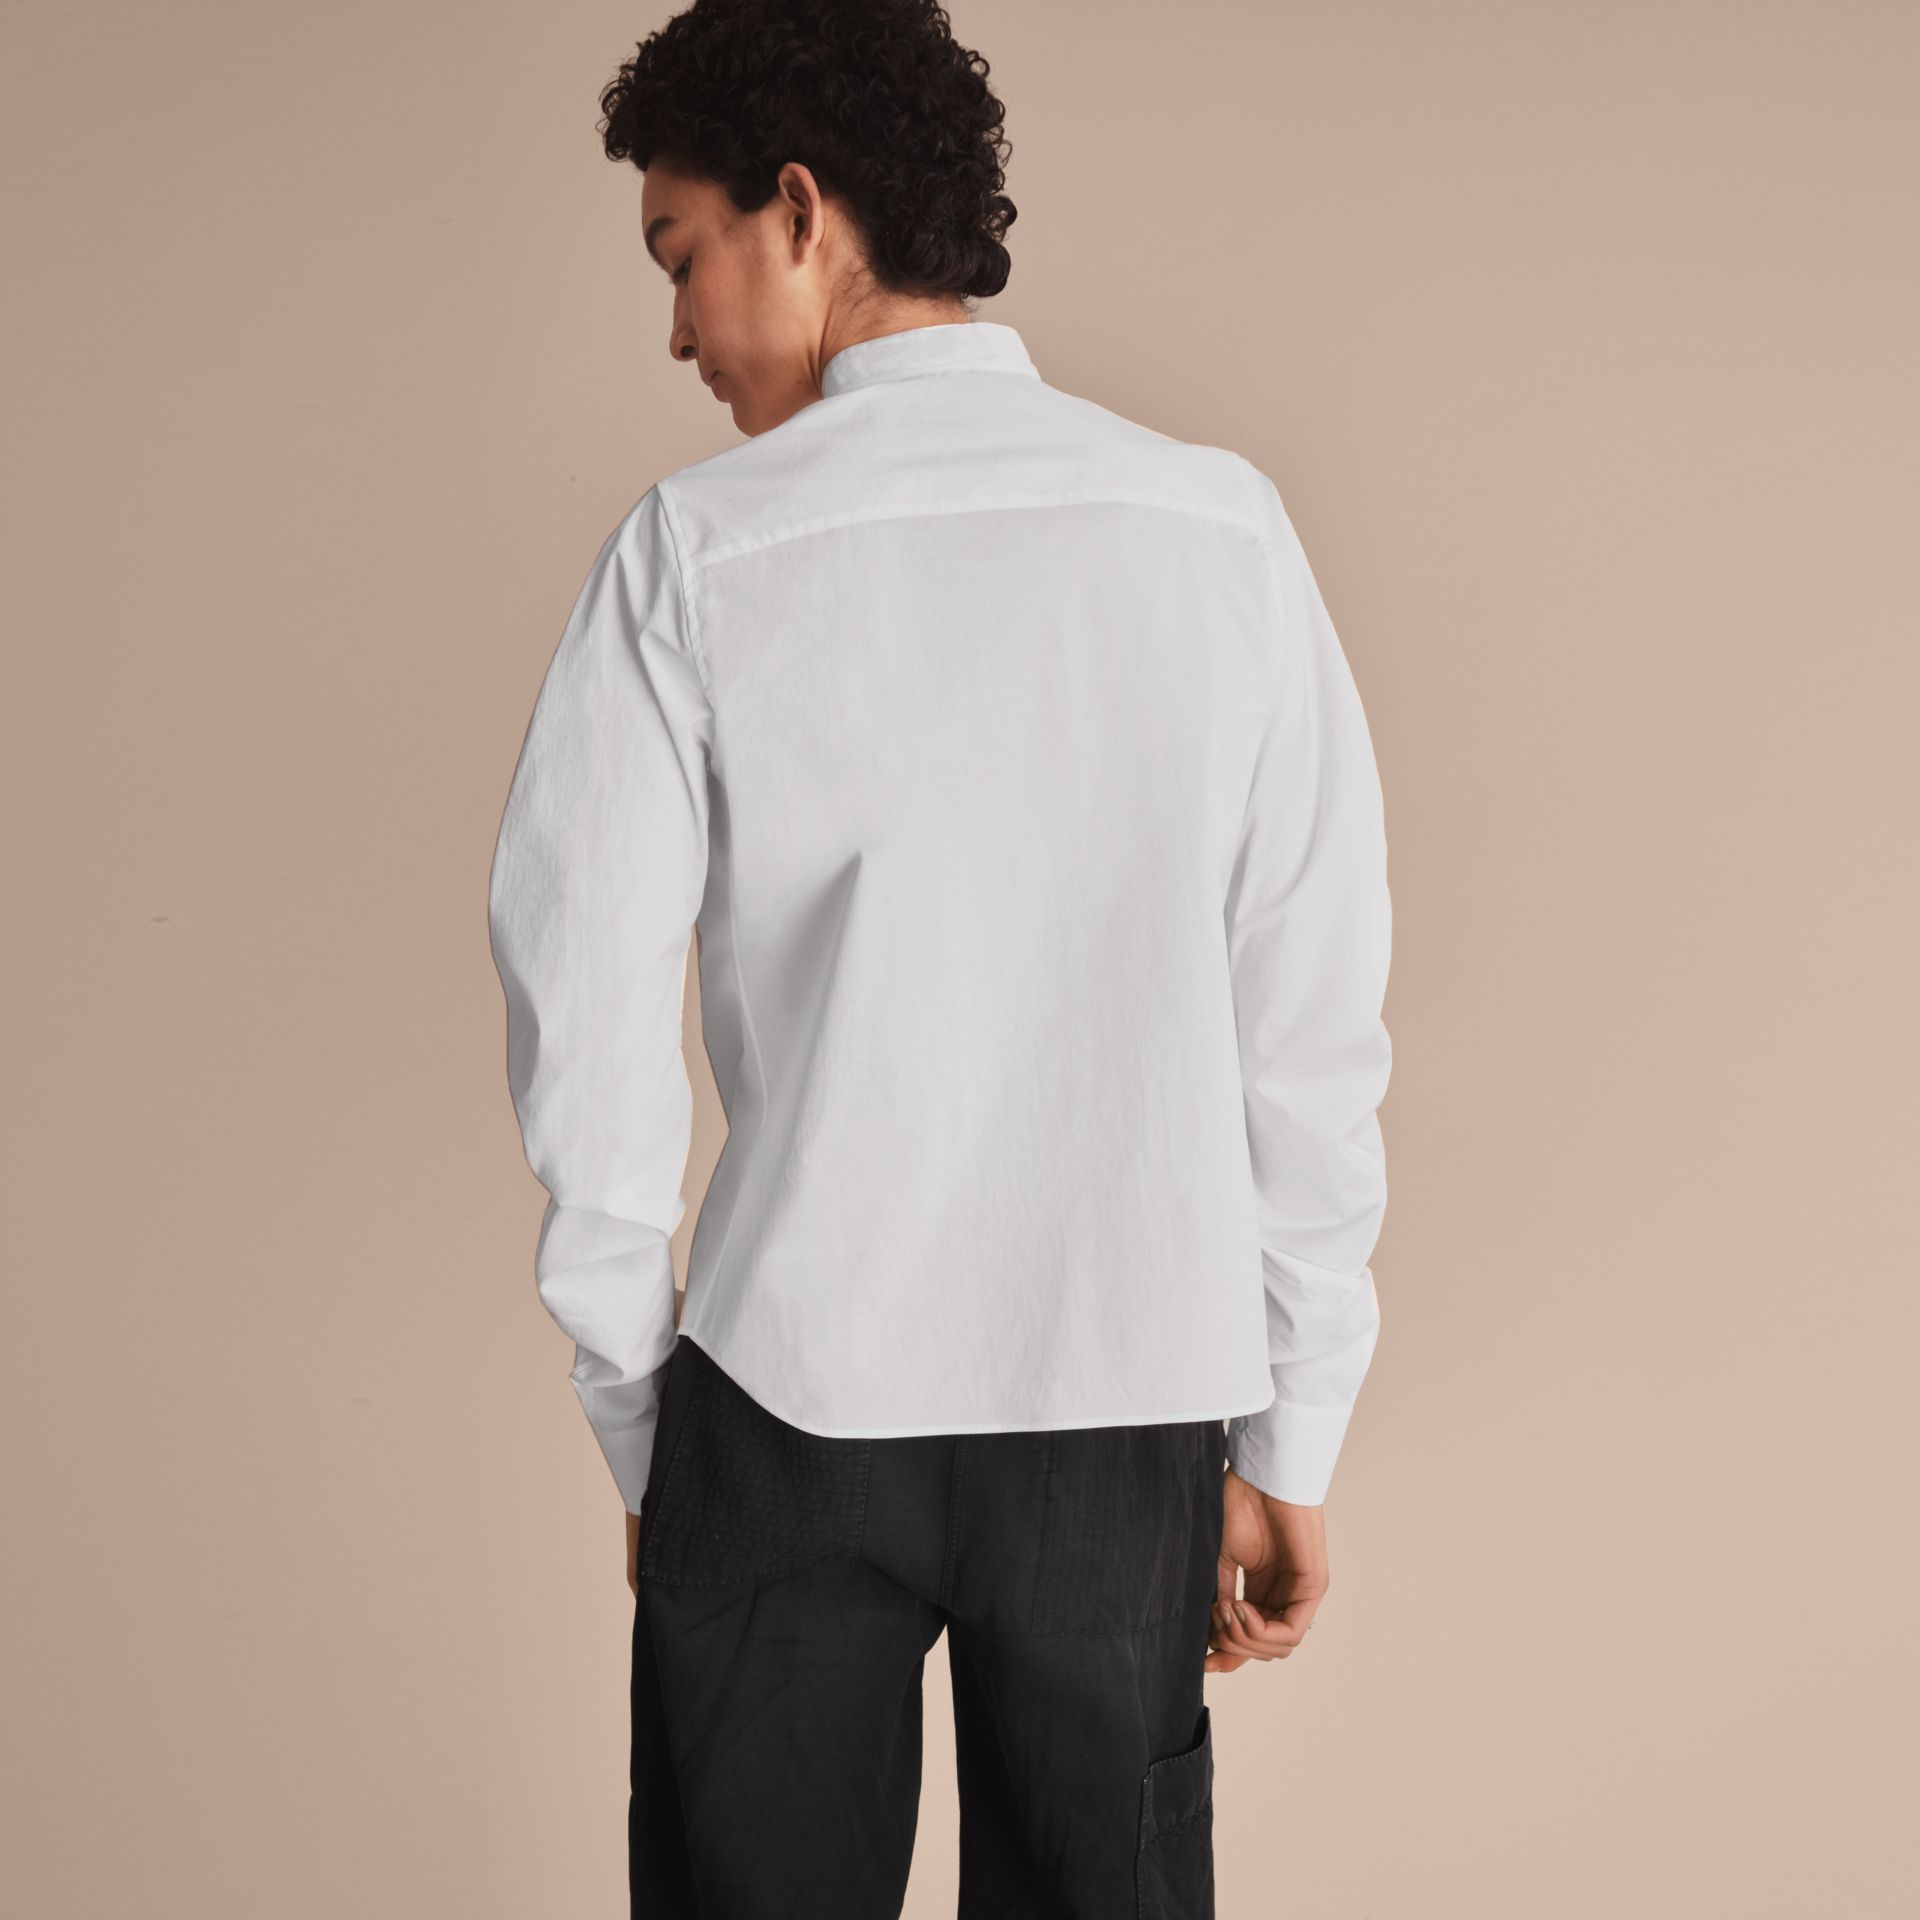 Pintuck Bib Stretch Cotton Shirt in White - gallery image 3